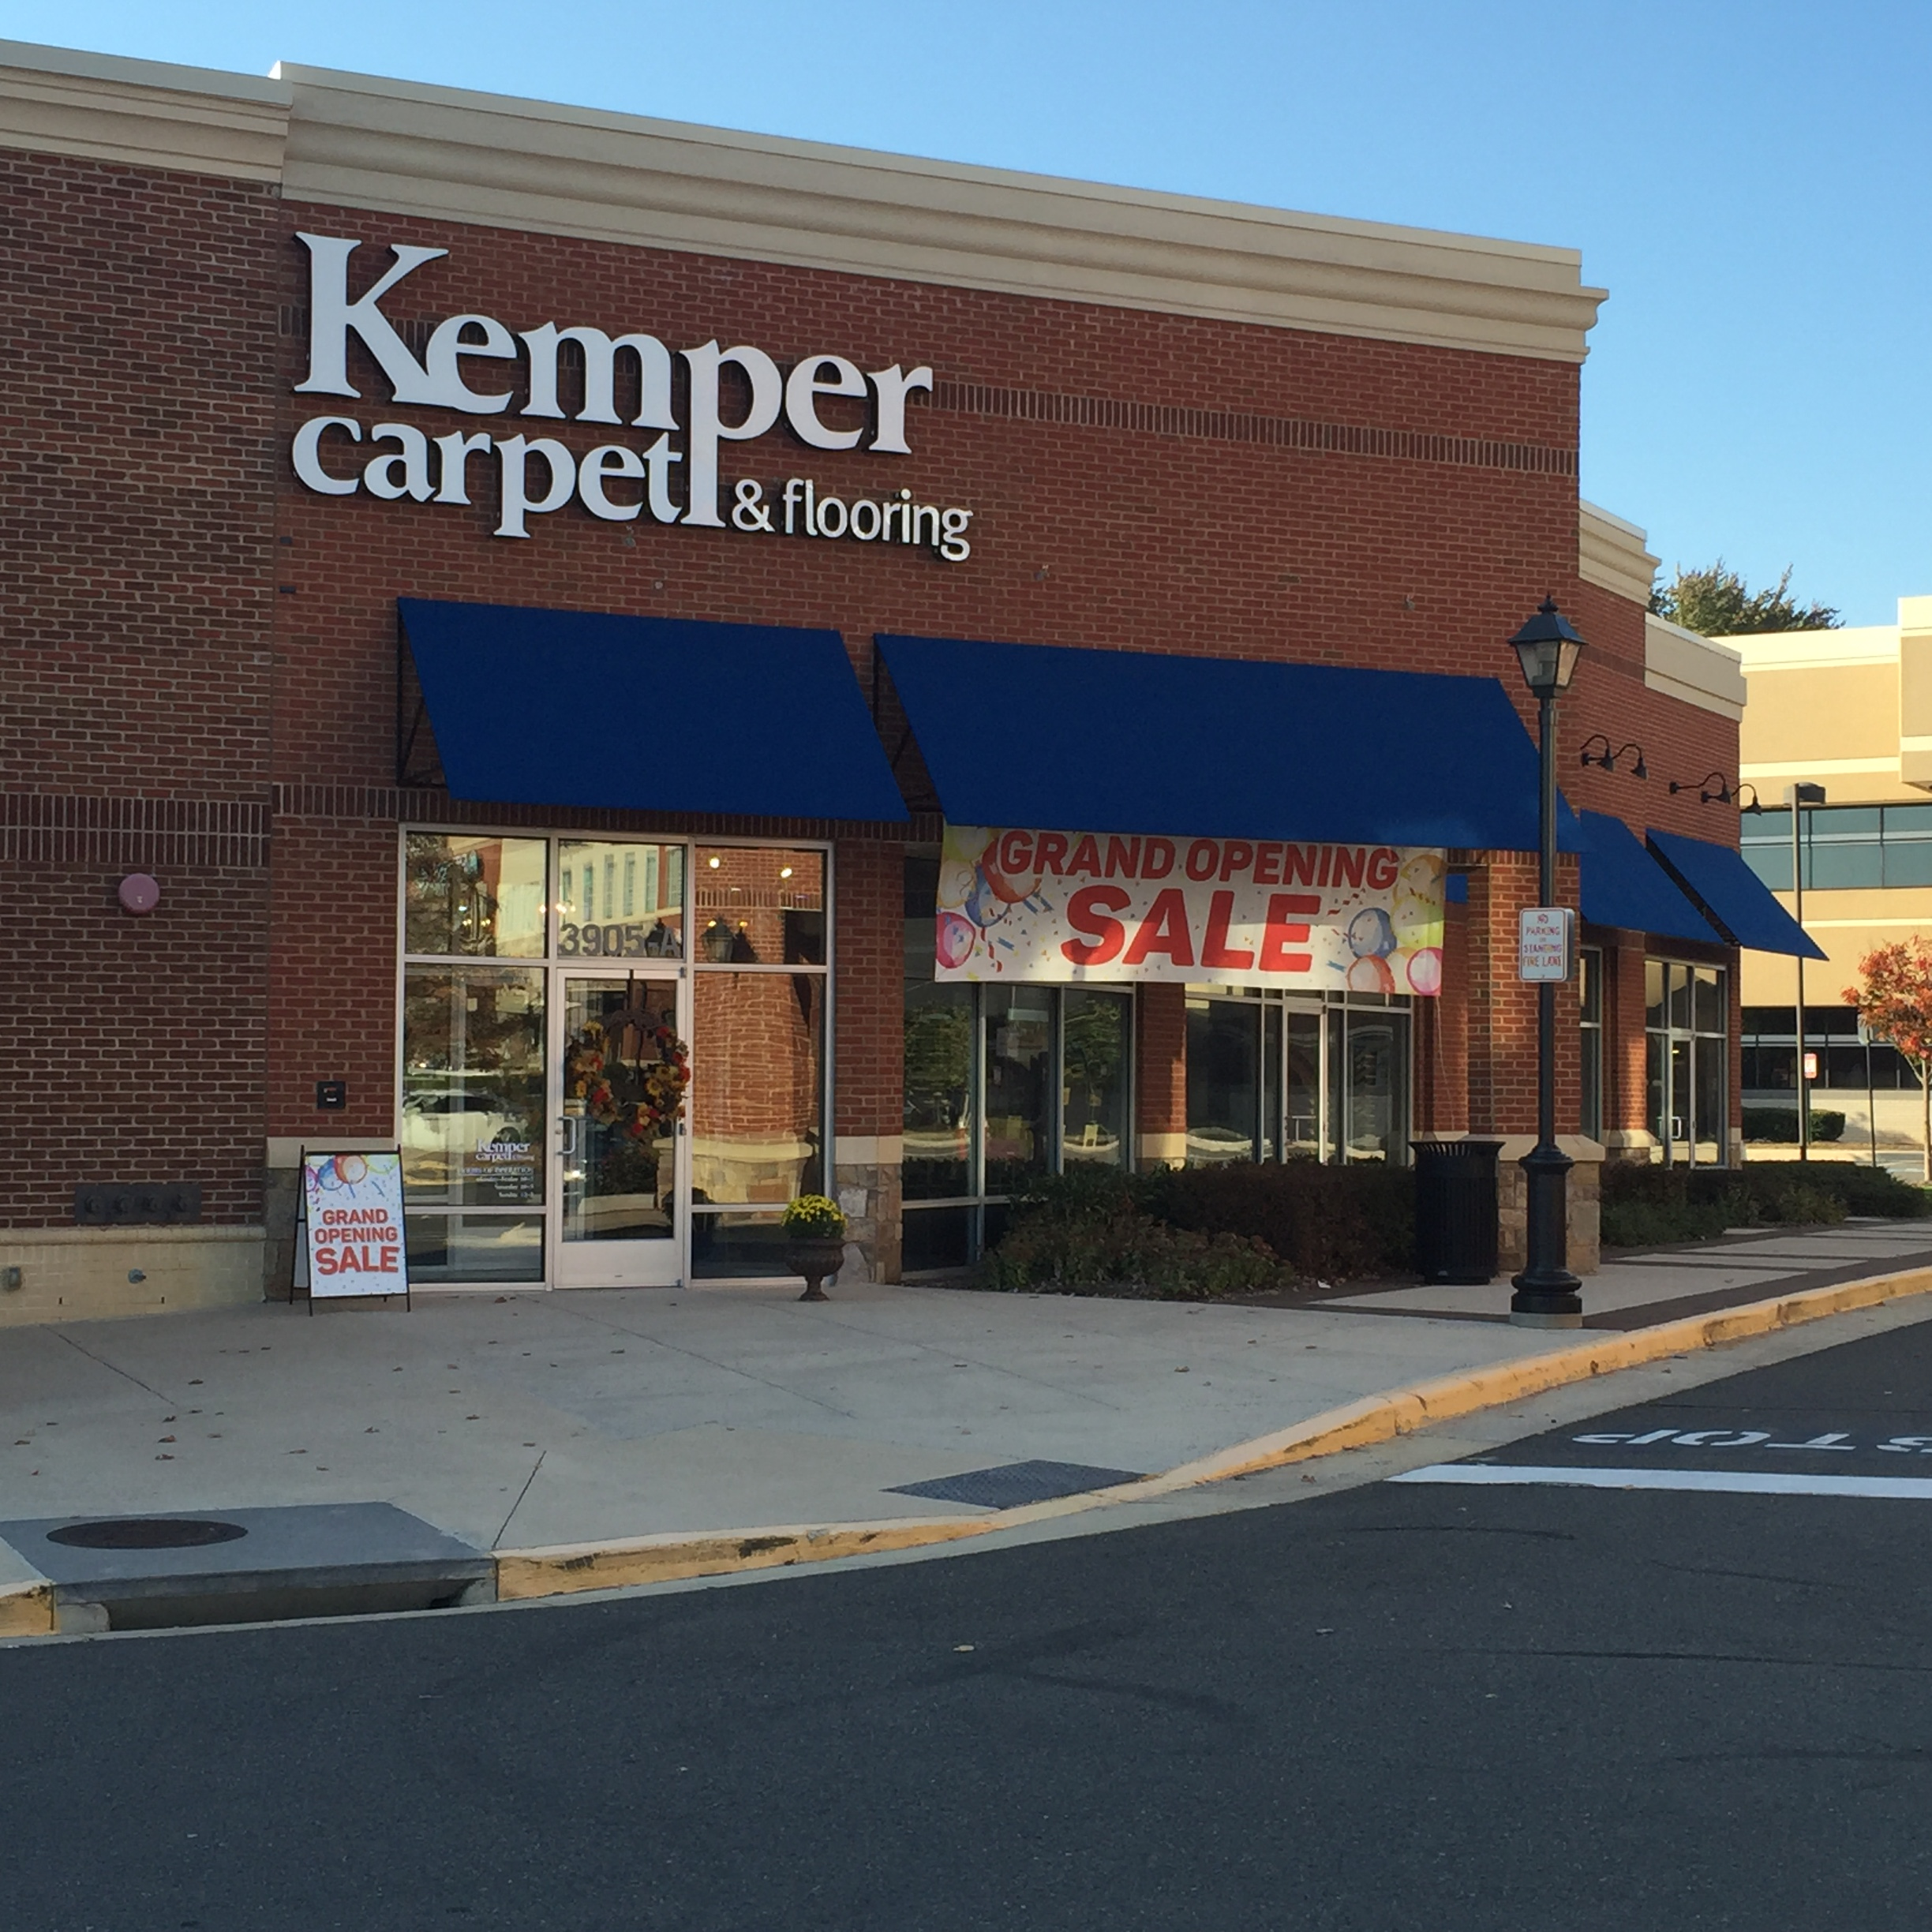 Kemper Carpet & Flooring - 3905a Fair Ridge Dr, Fairfax, VA 22033